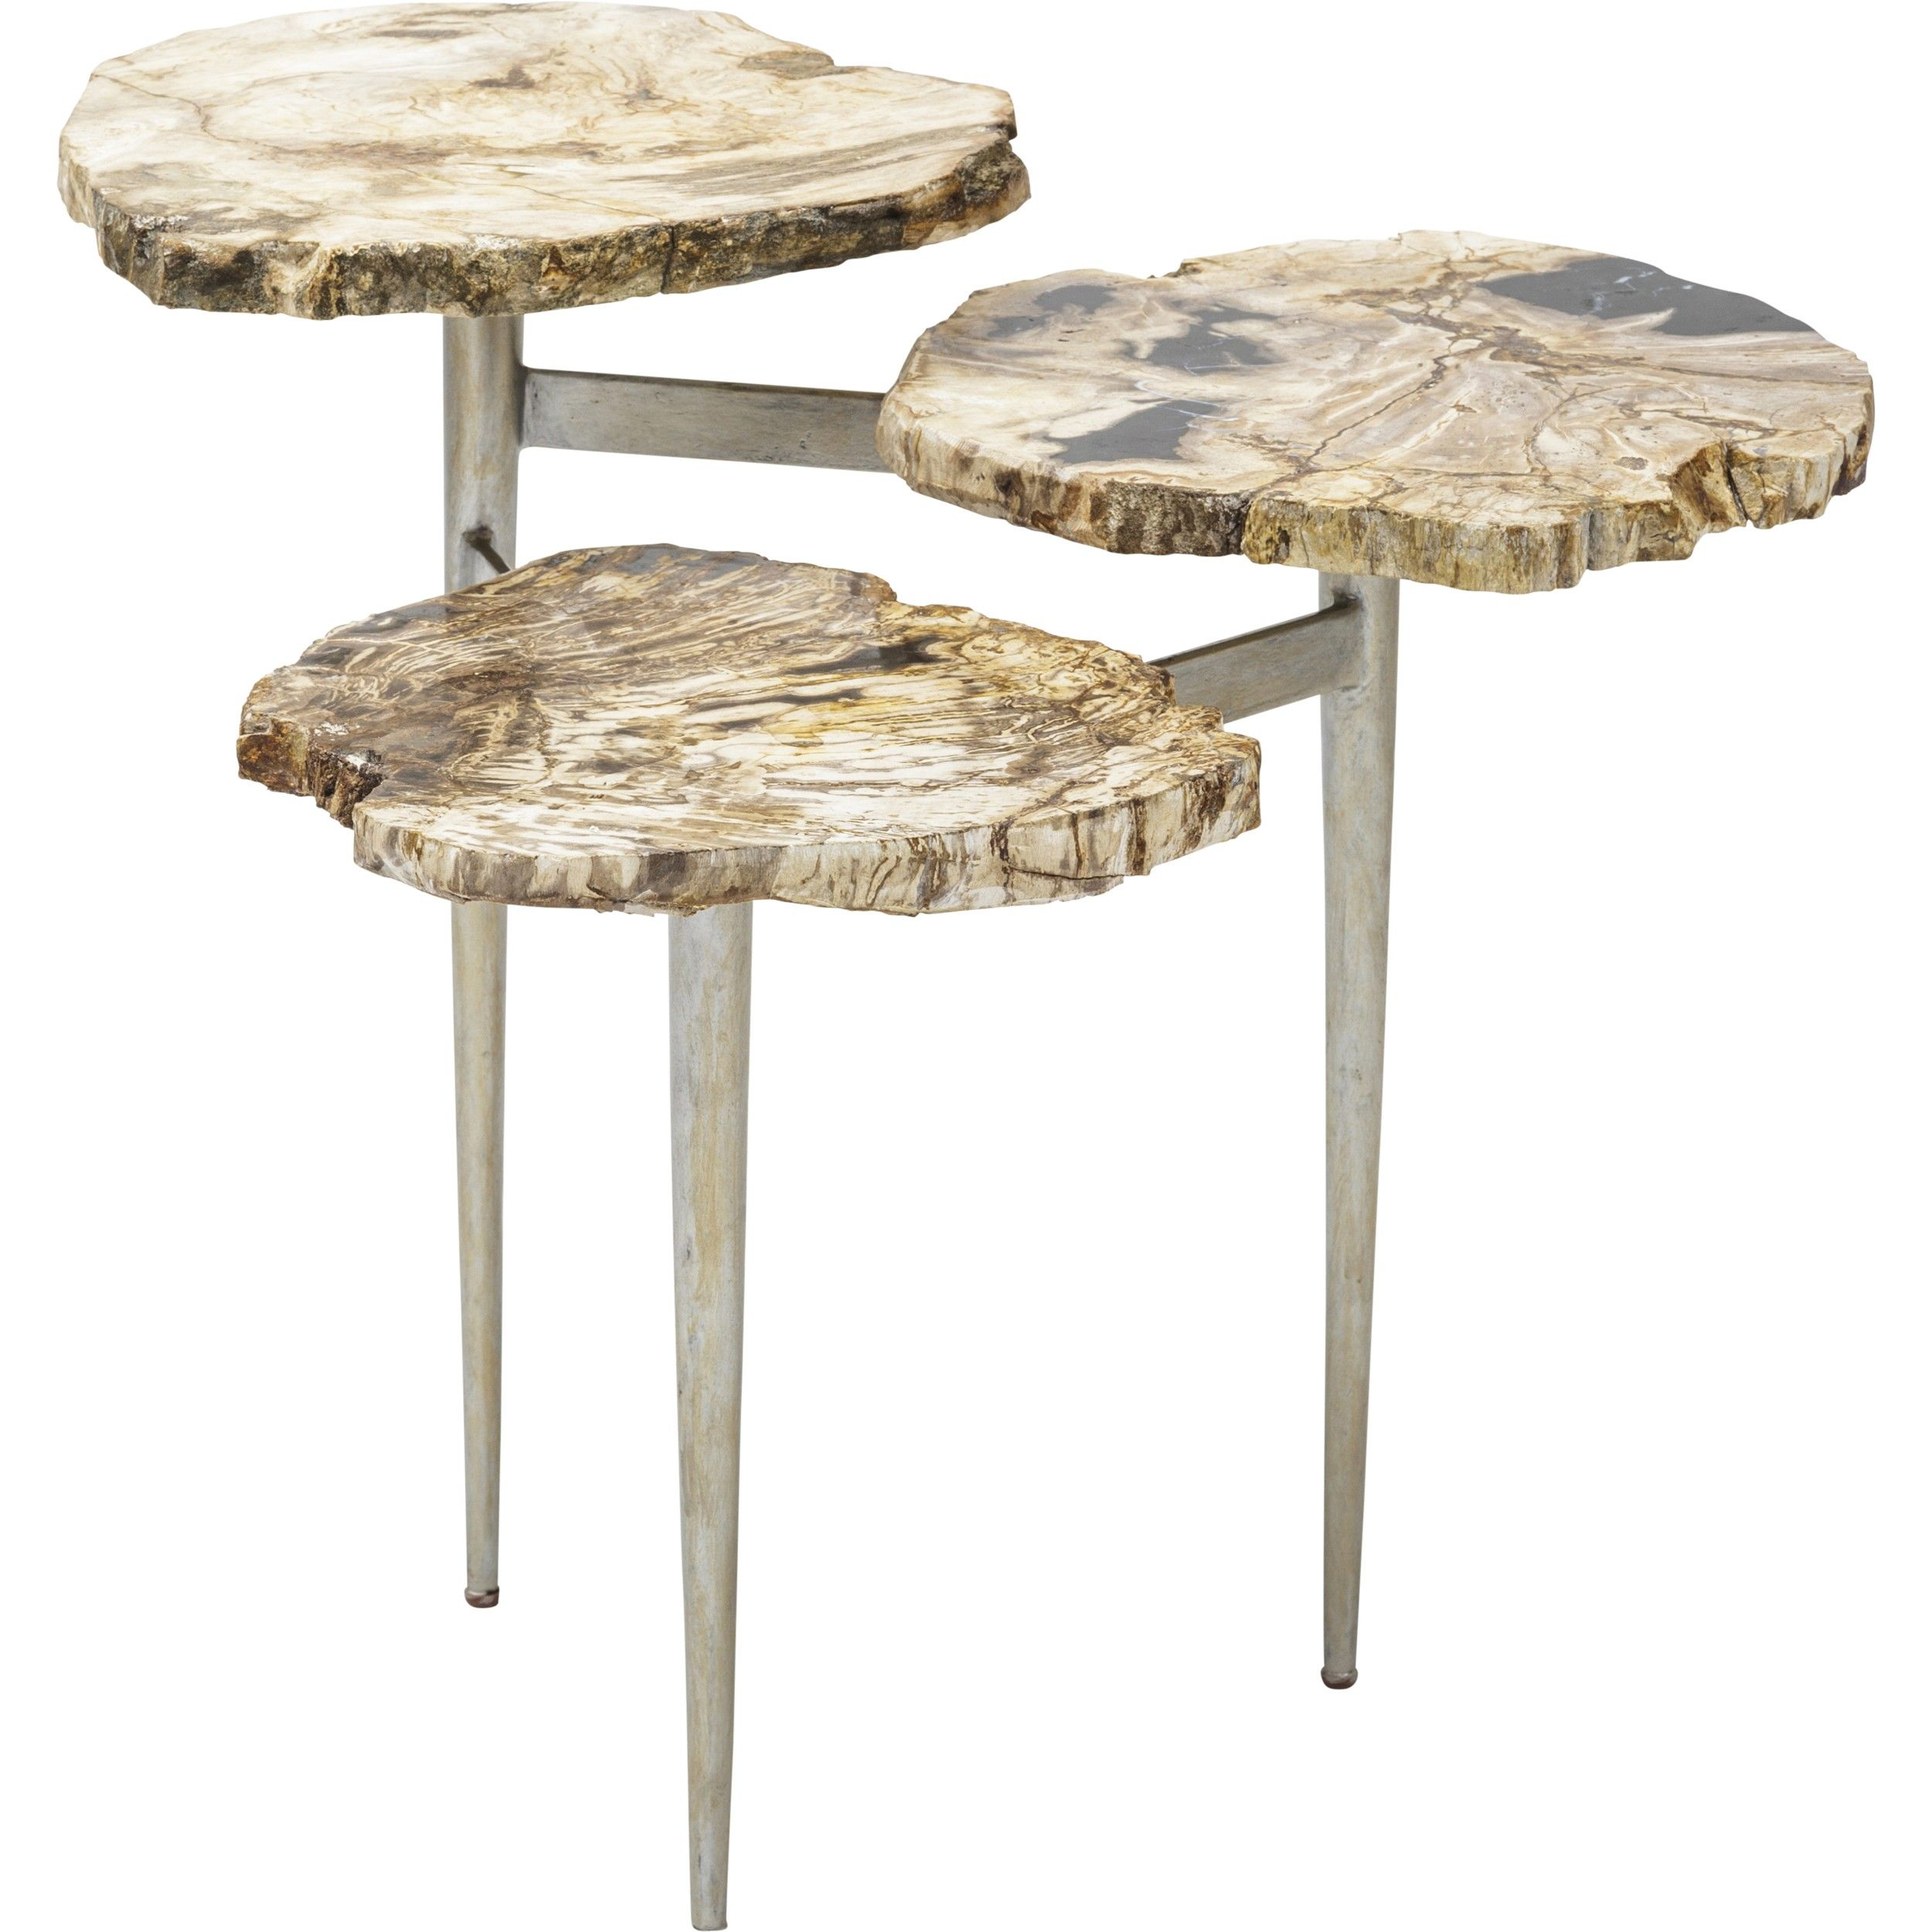 petrified wood tier table furniture accent tables end what new tulsa walnut bedside trestle coffee tray pottery barn wine holder vintage retro dining and chairs wicker with